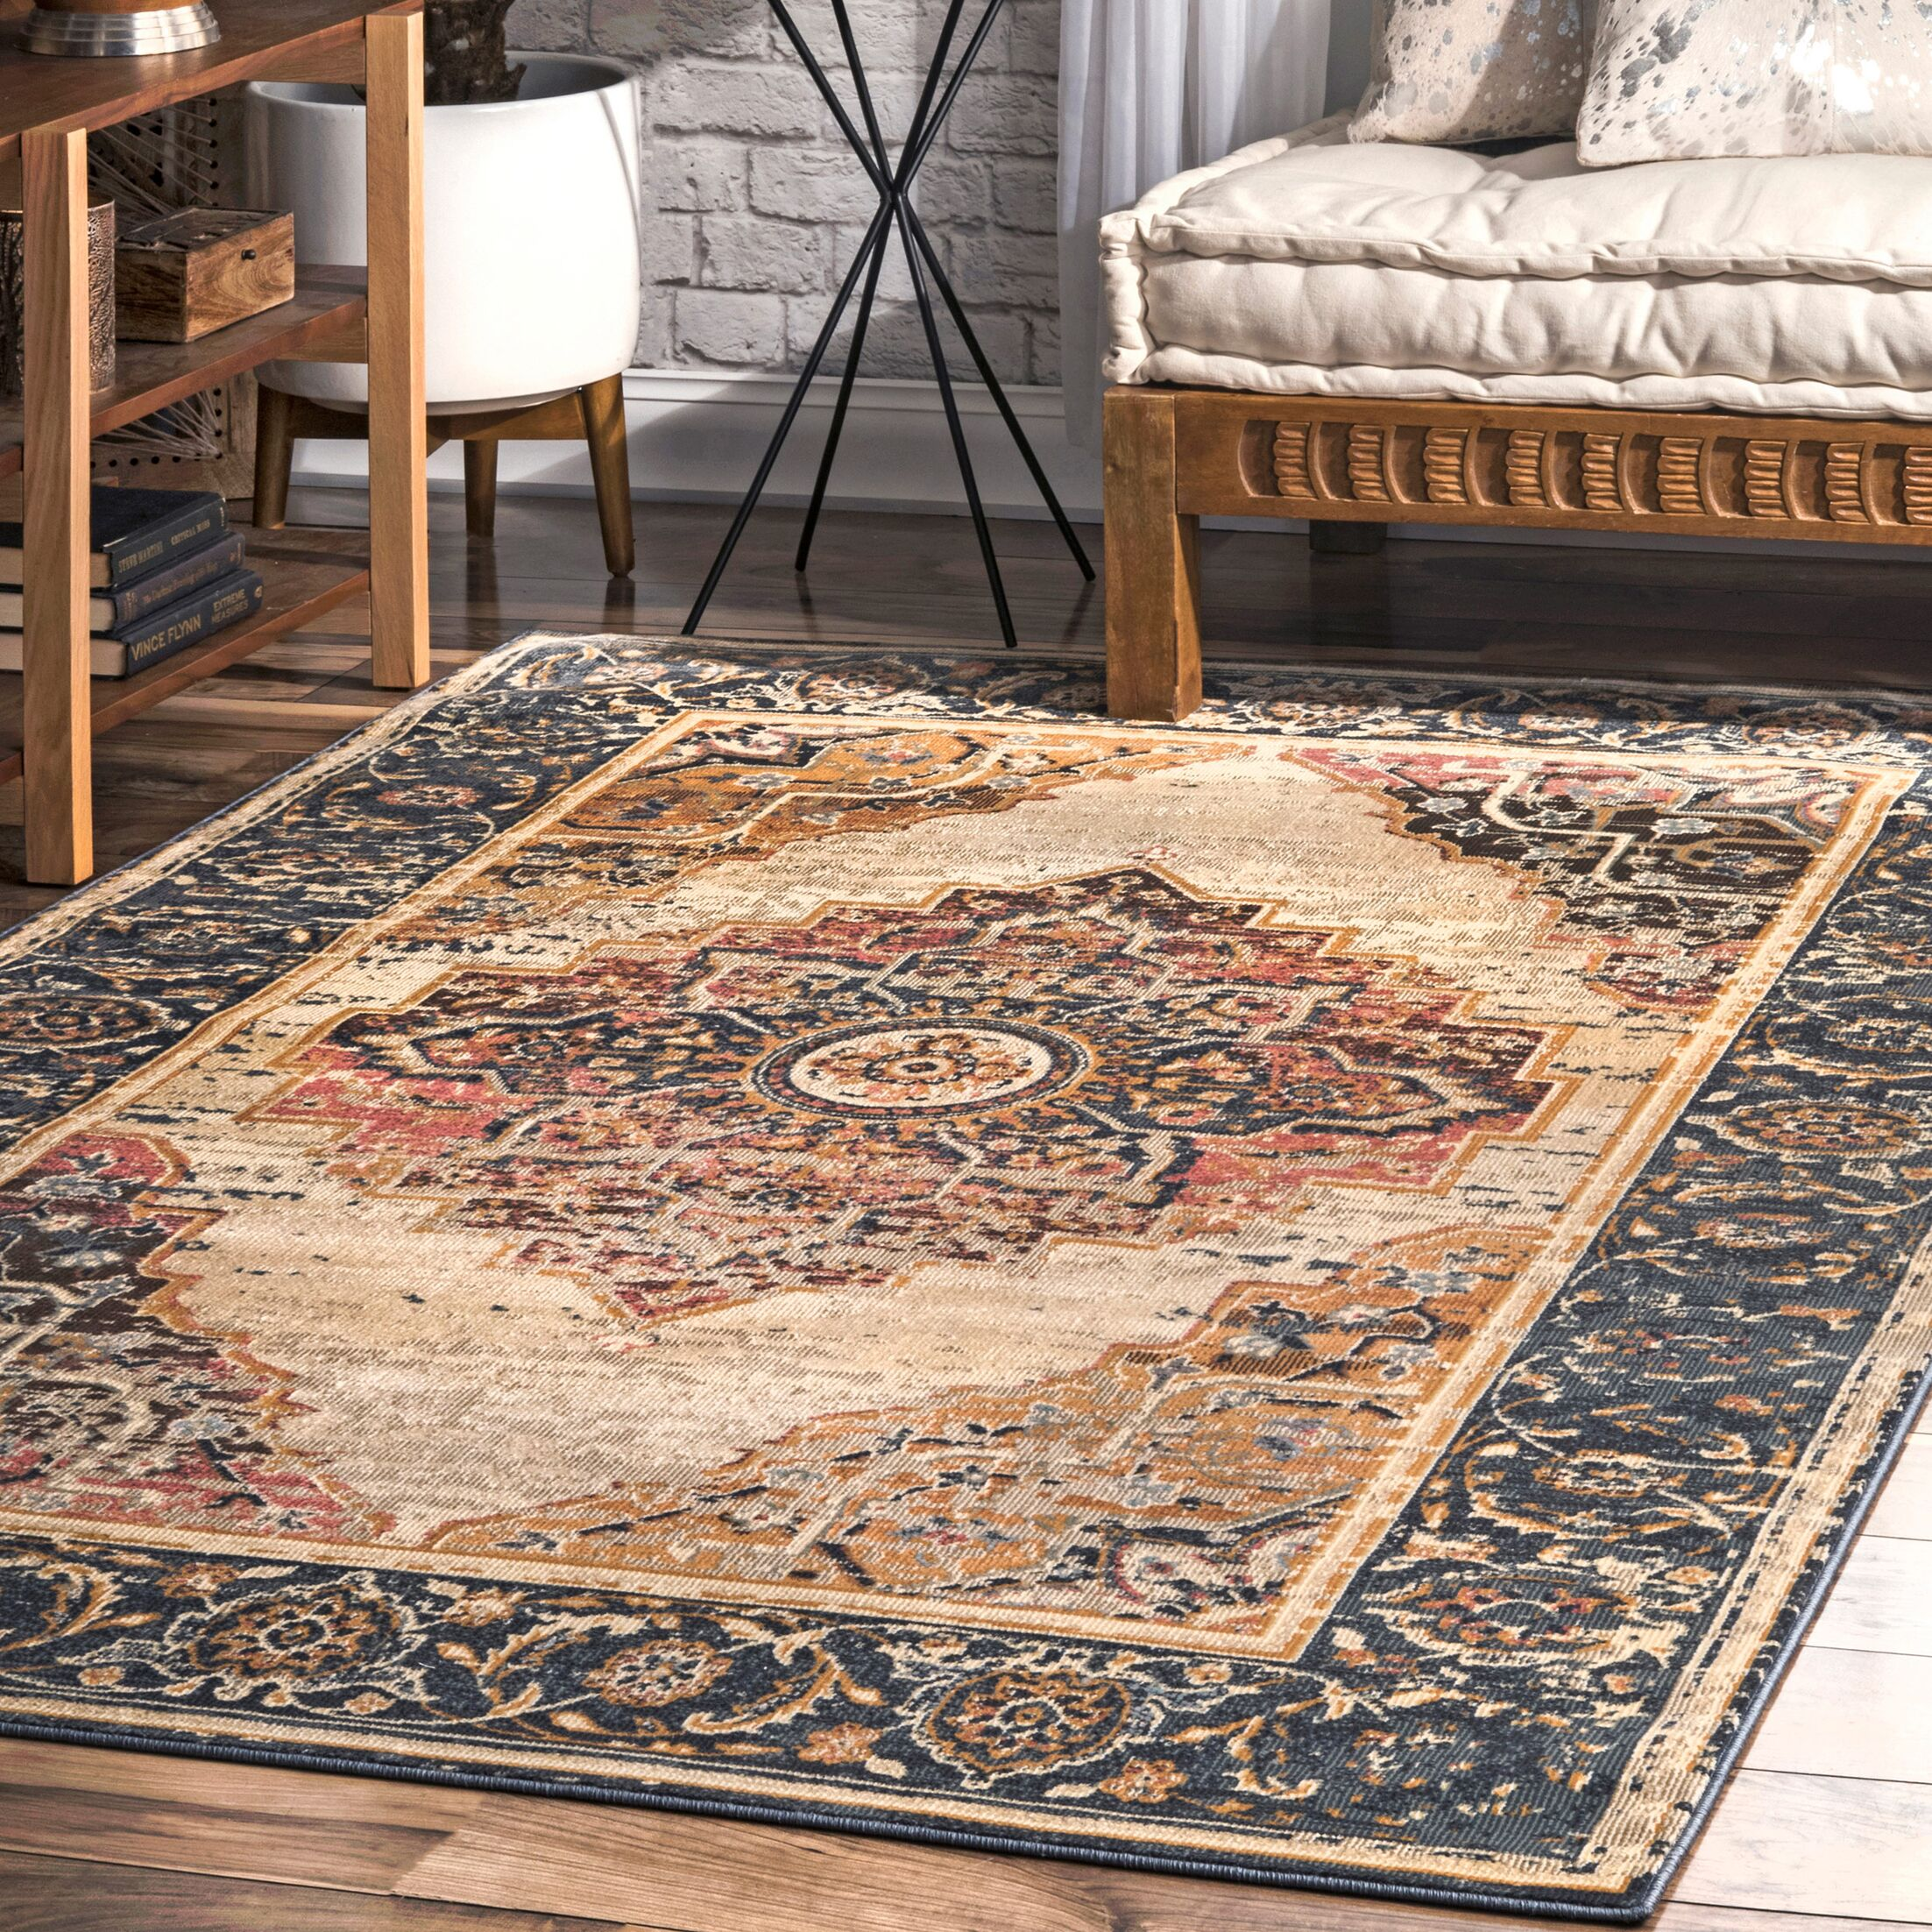 Ackerly Dark Blue/Beige Area Rug Rug Size: Rectangle 7' 10